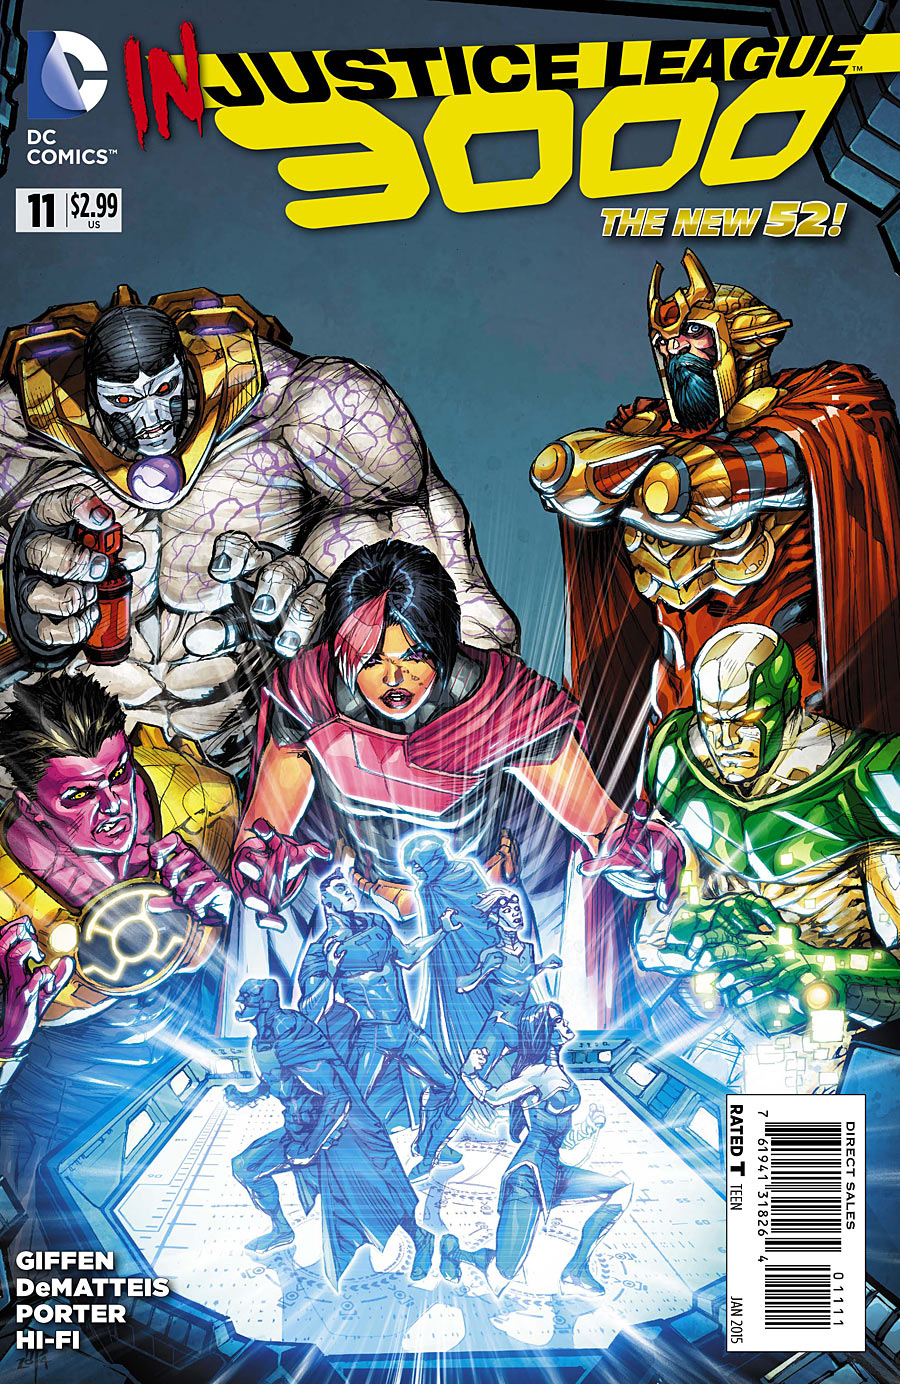 Justice League 3000 Vol 1 11